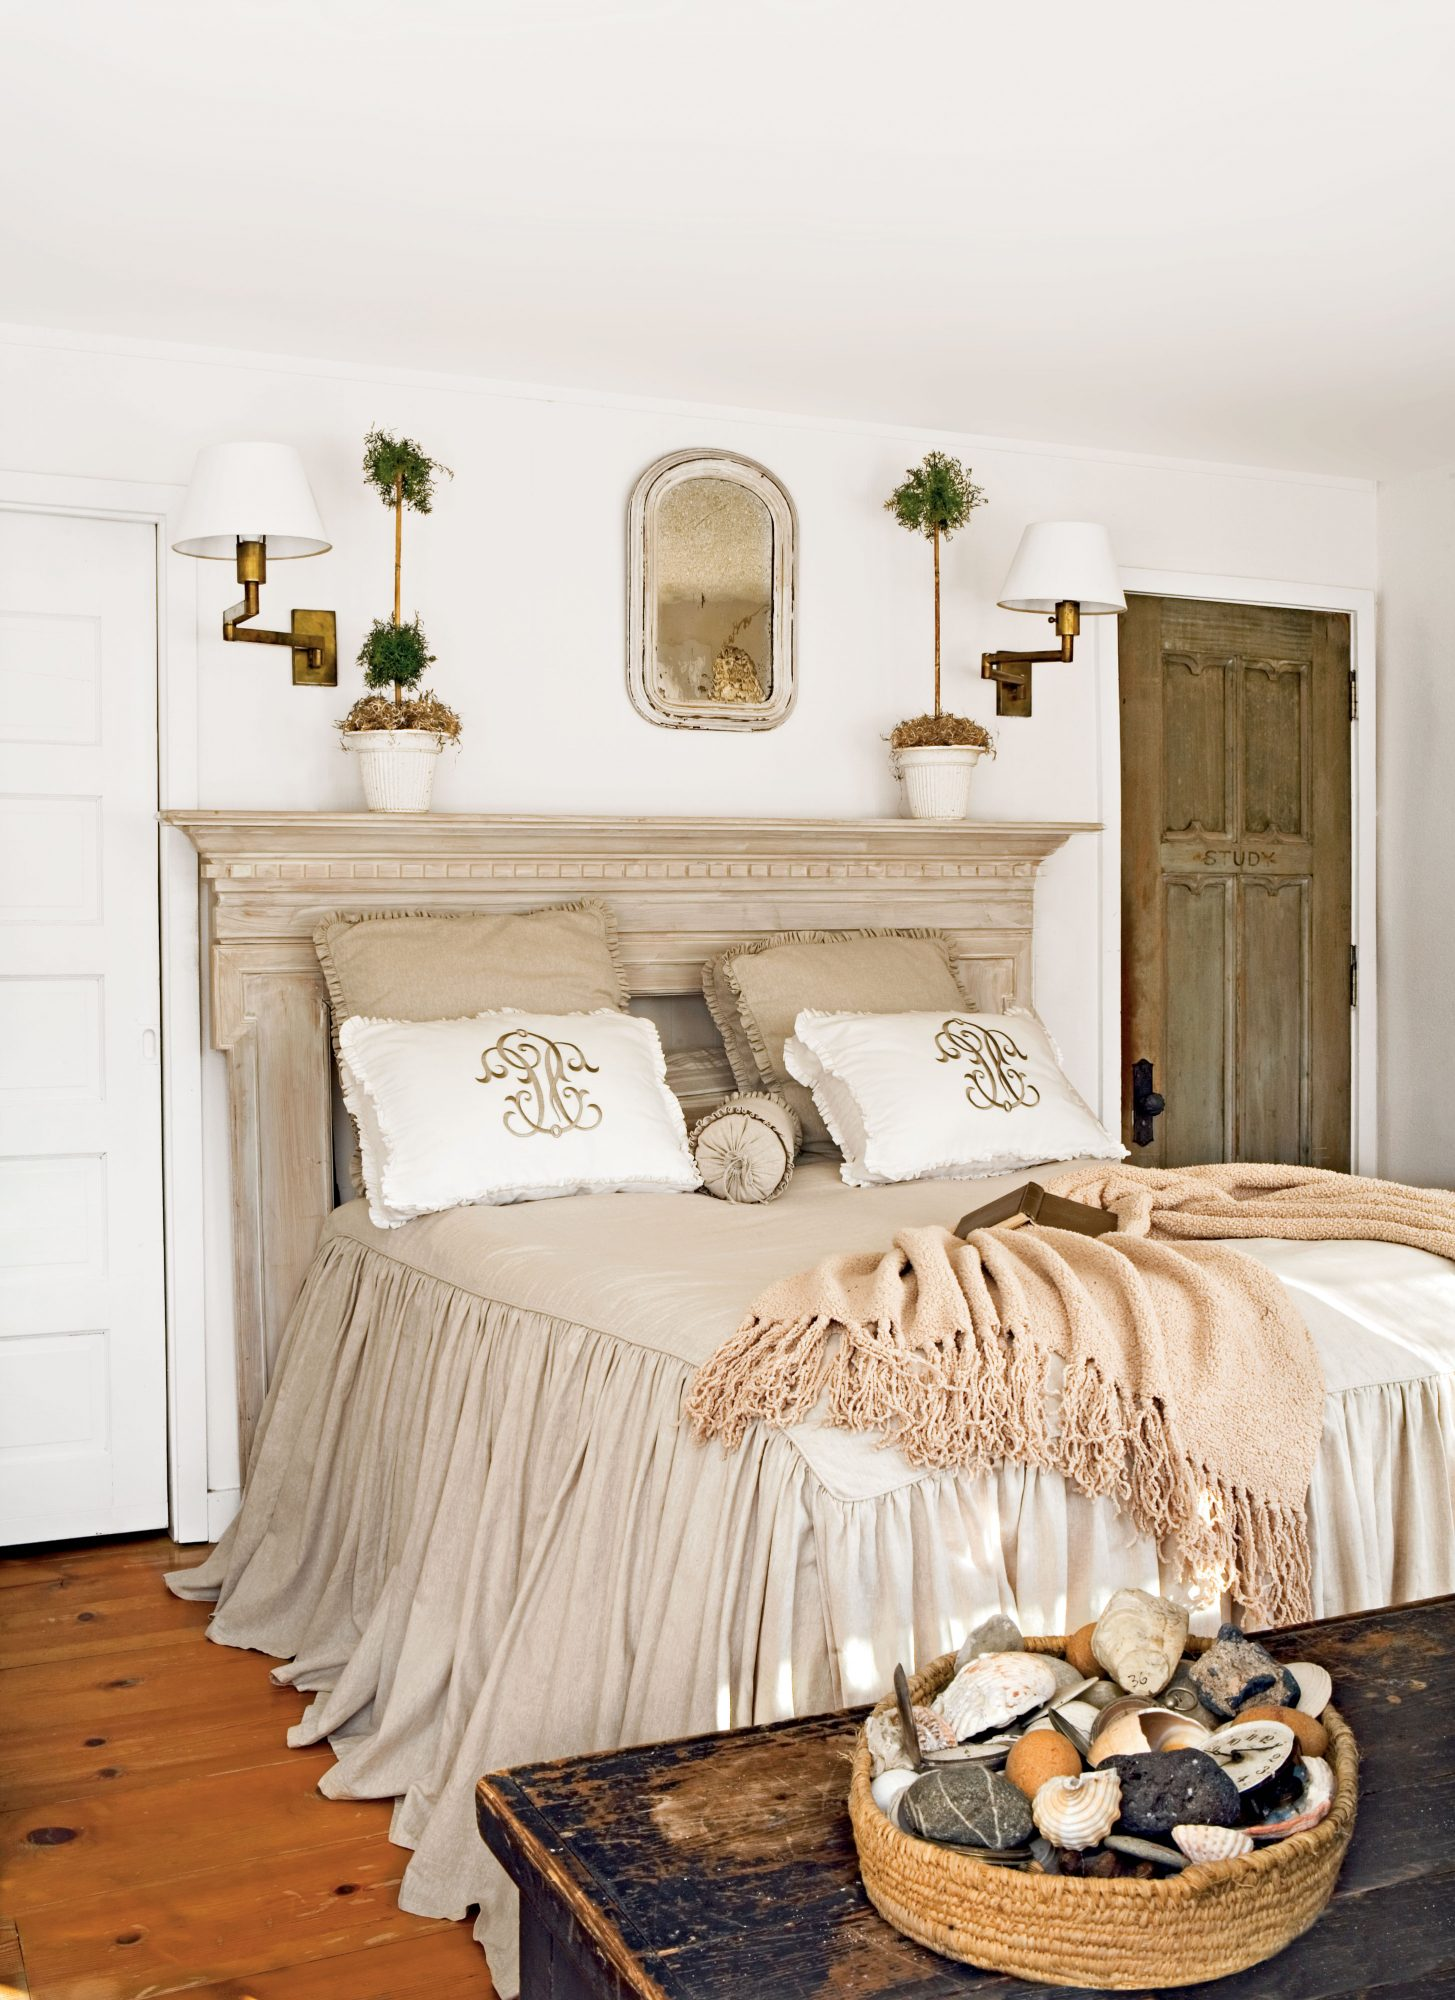 A damaged mantel serves as a headboard in the master bedroom. Because the small space doesn't allow for bedside tables, the homeowner installed sconces for nighttime reading.